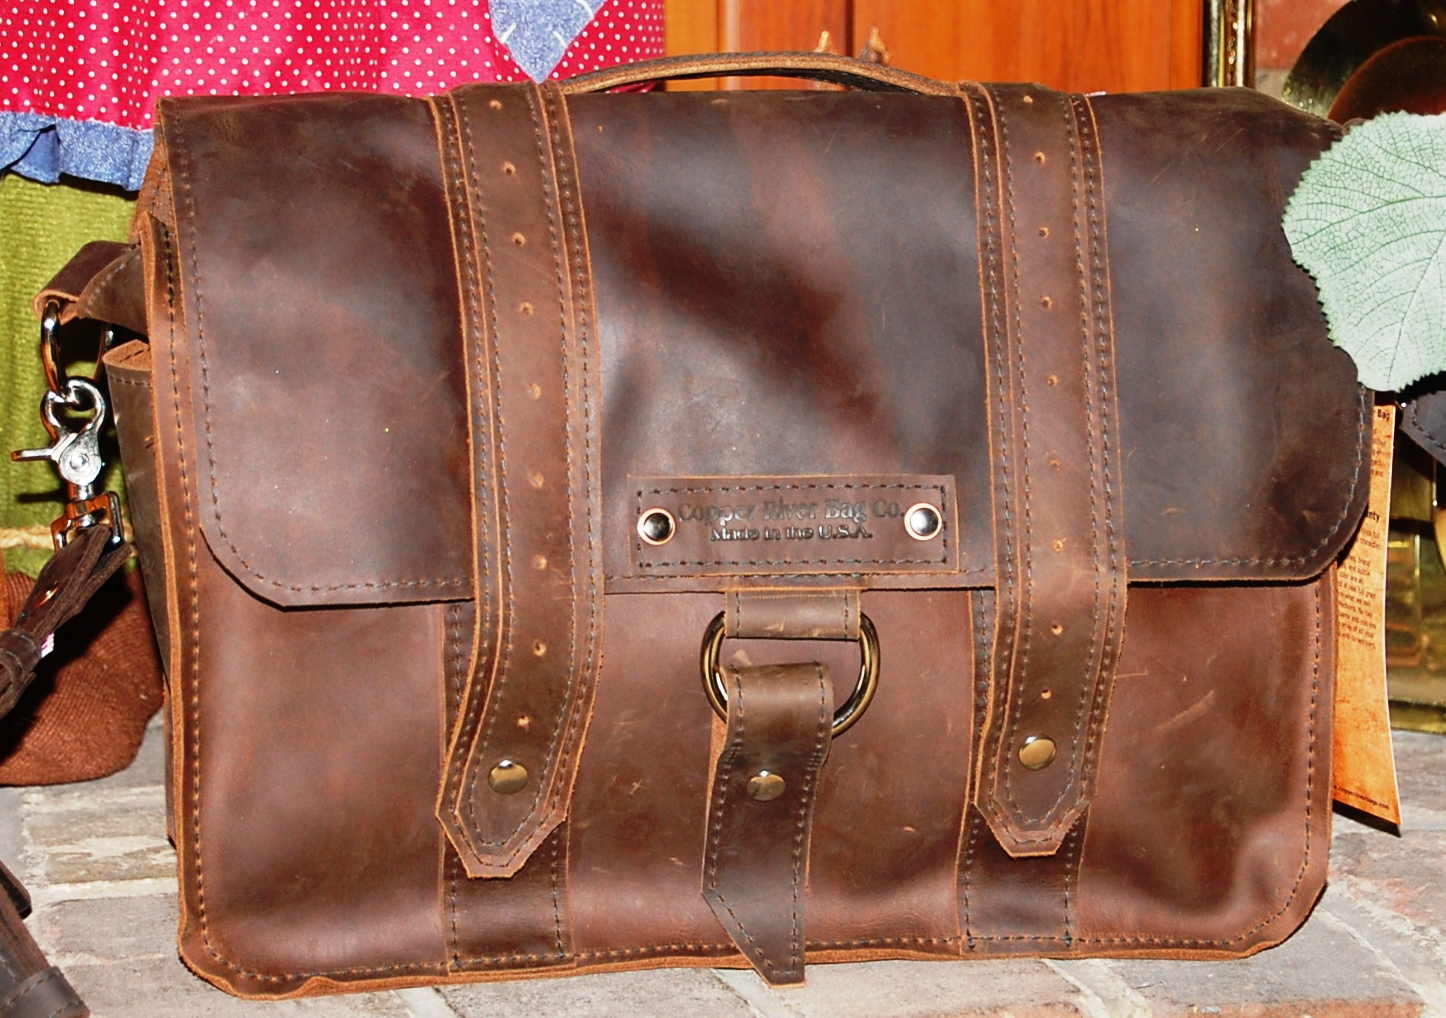 Adventures Only Begin When You Get A Leather Bag From Copper River Review